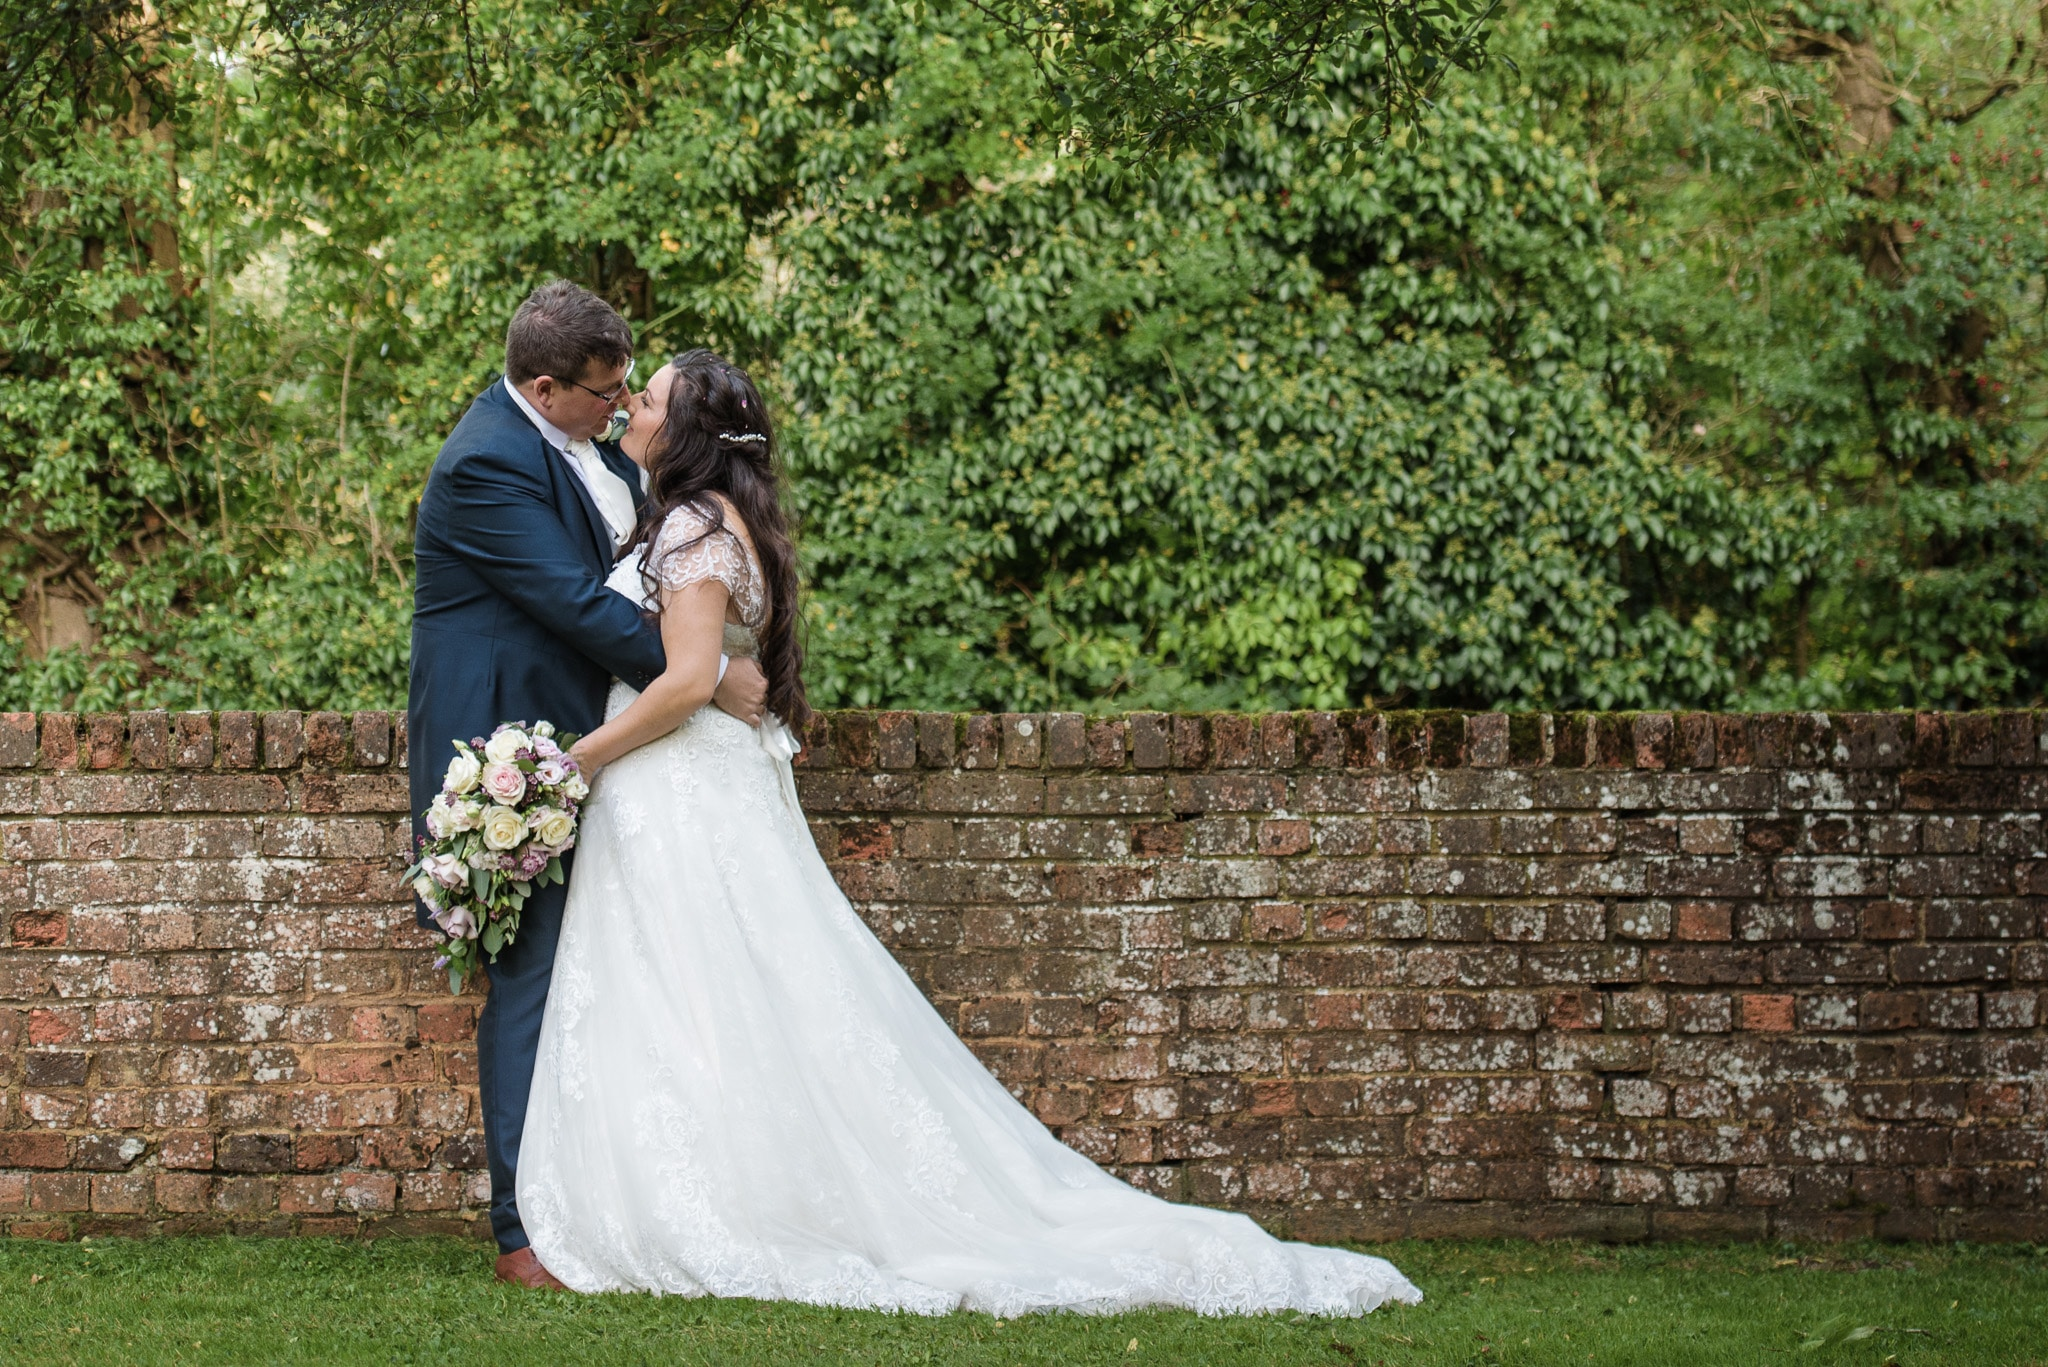 Wedding at The Plough in Leigh